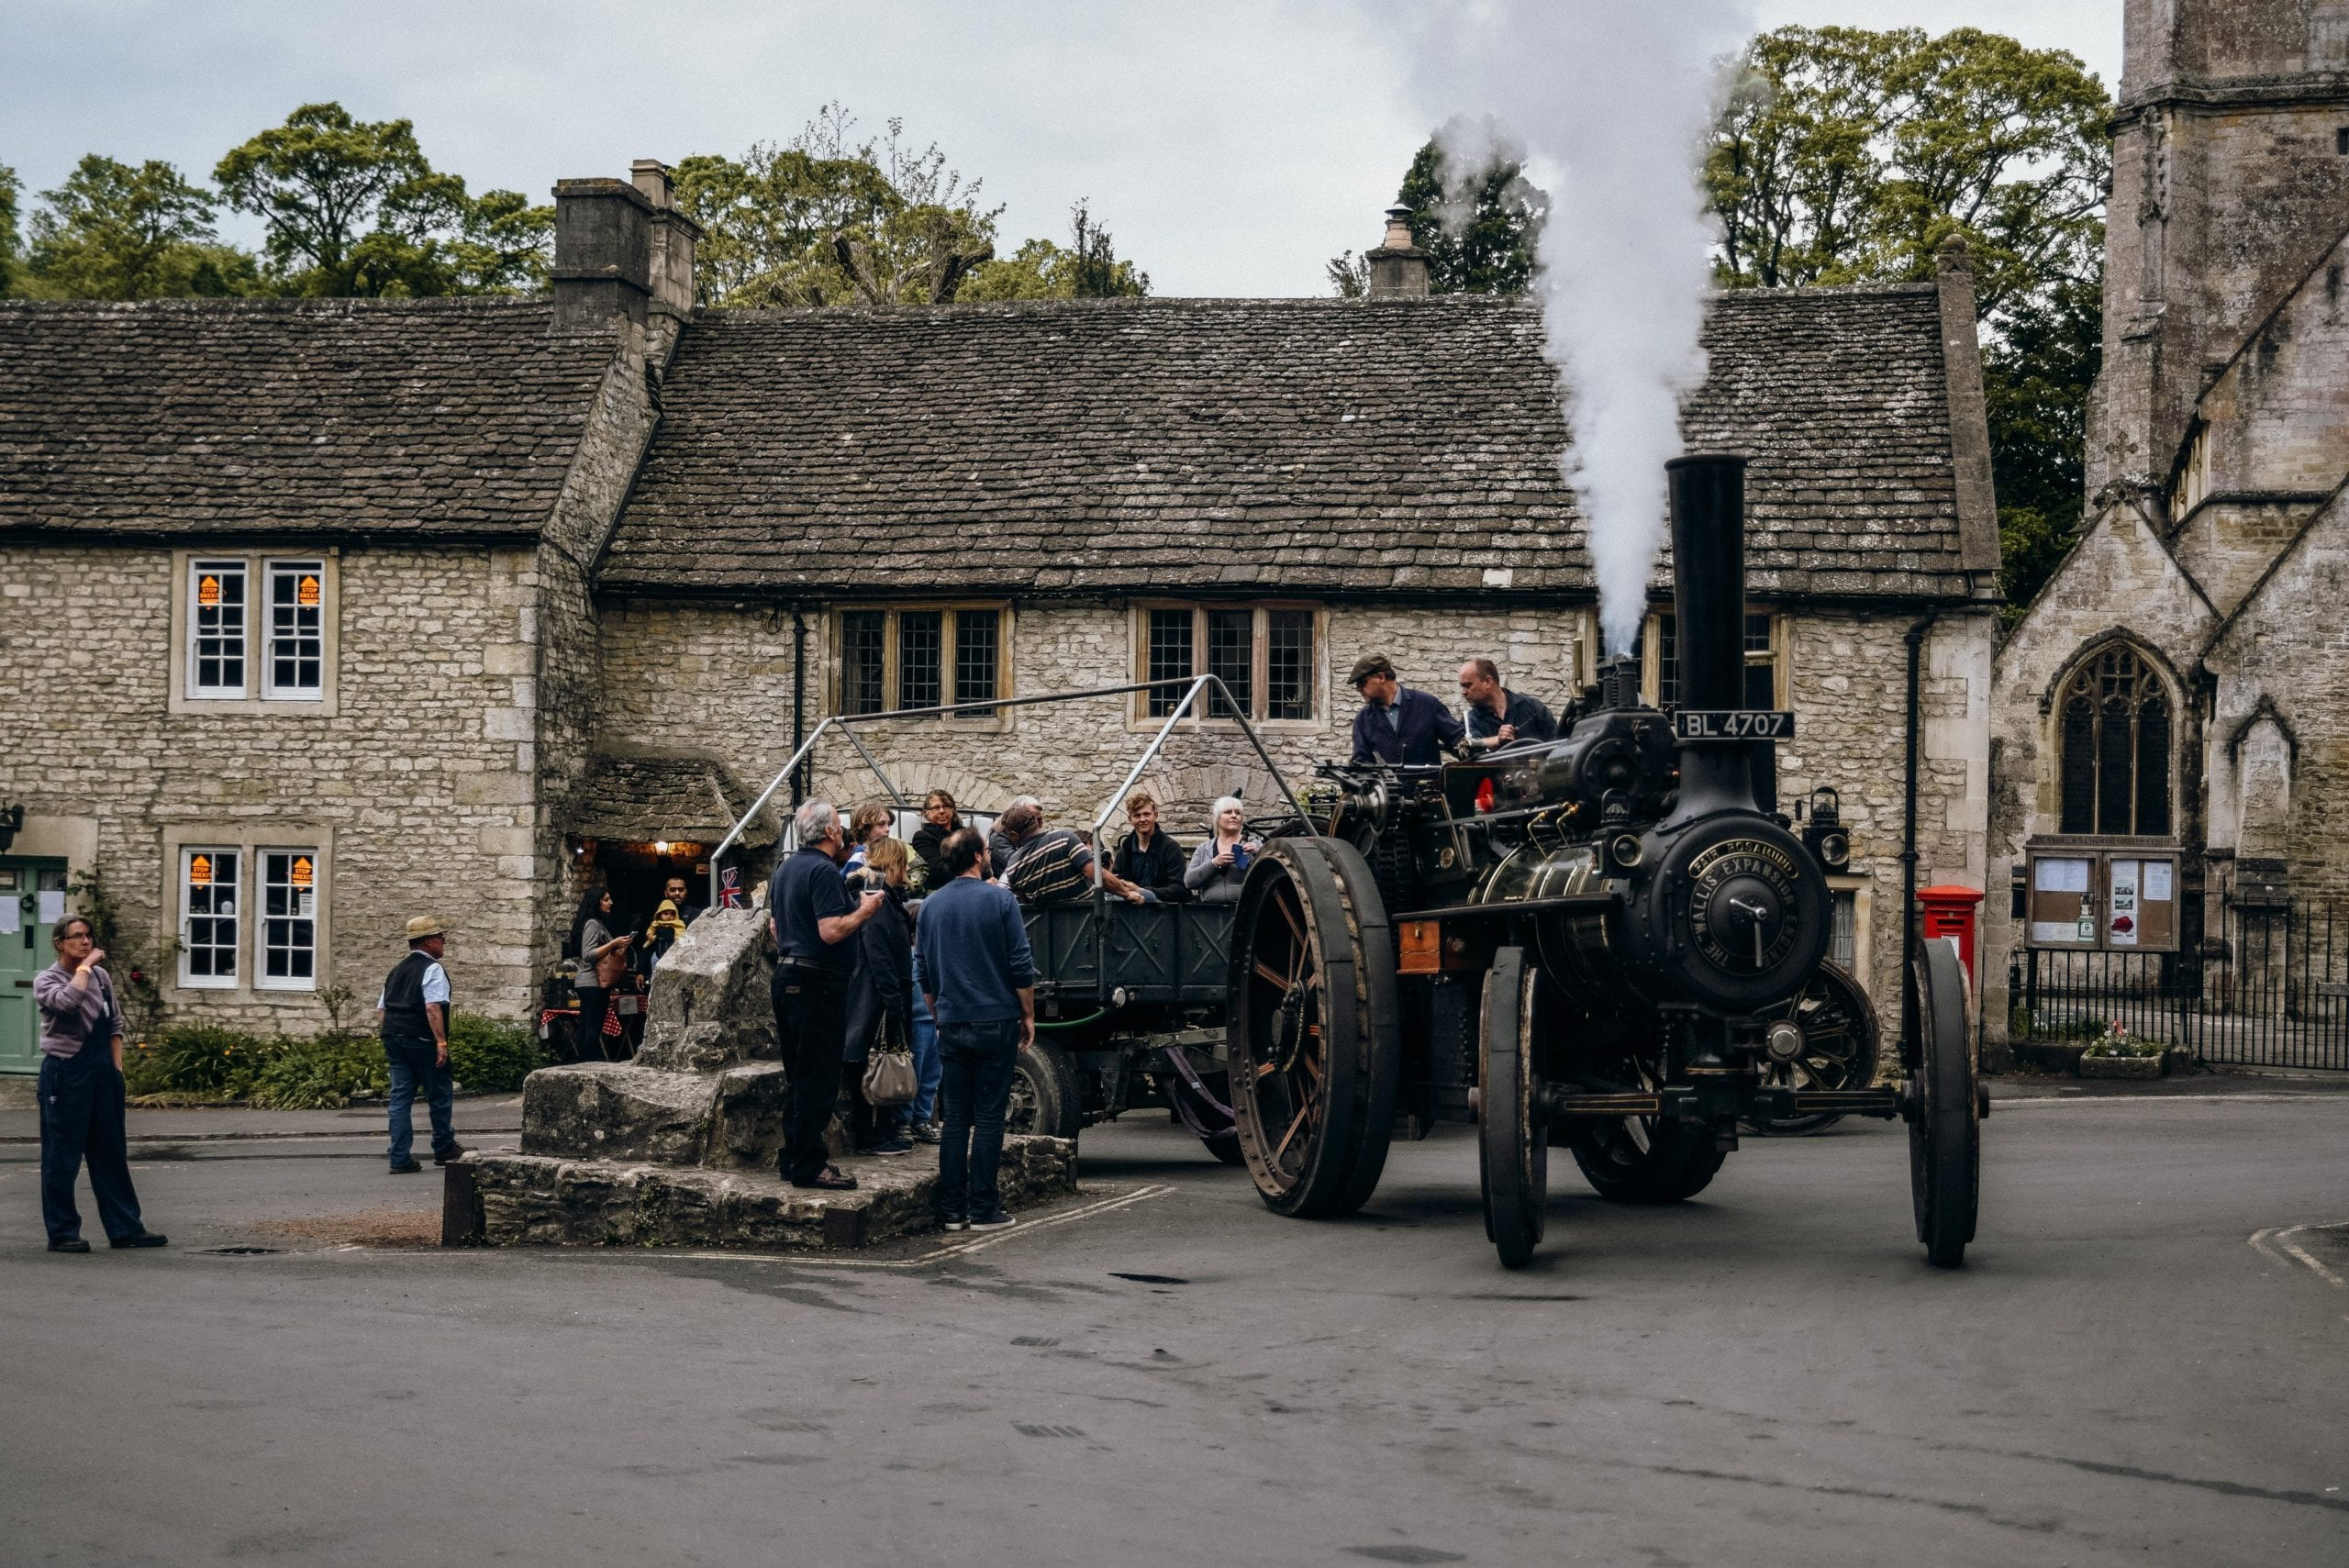 A Complete Guide To Castle Combe